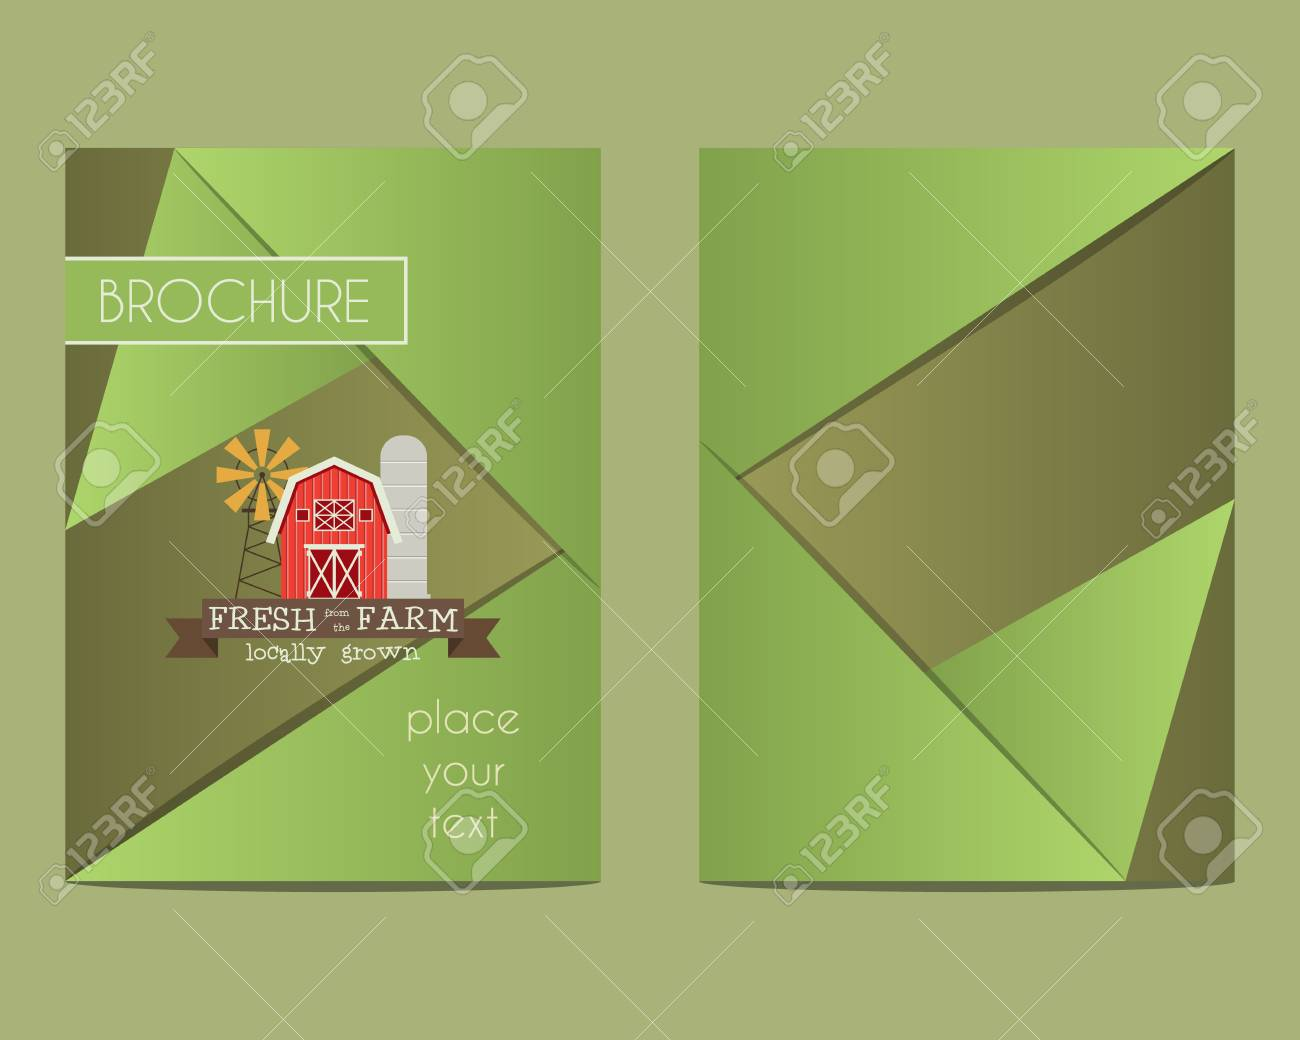 hight resolution of brochure and flyer a4 size design template with organic farm concept best for natural farm